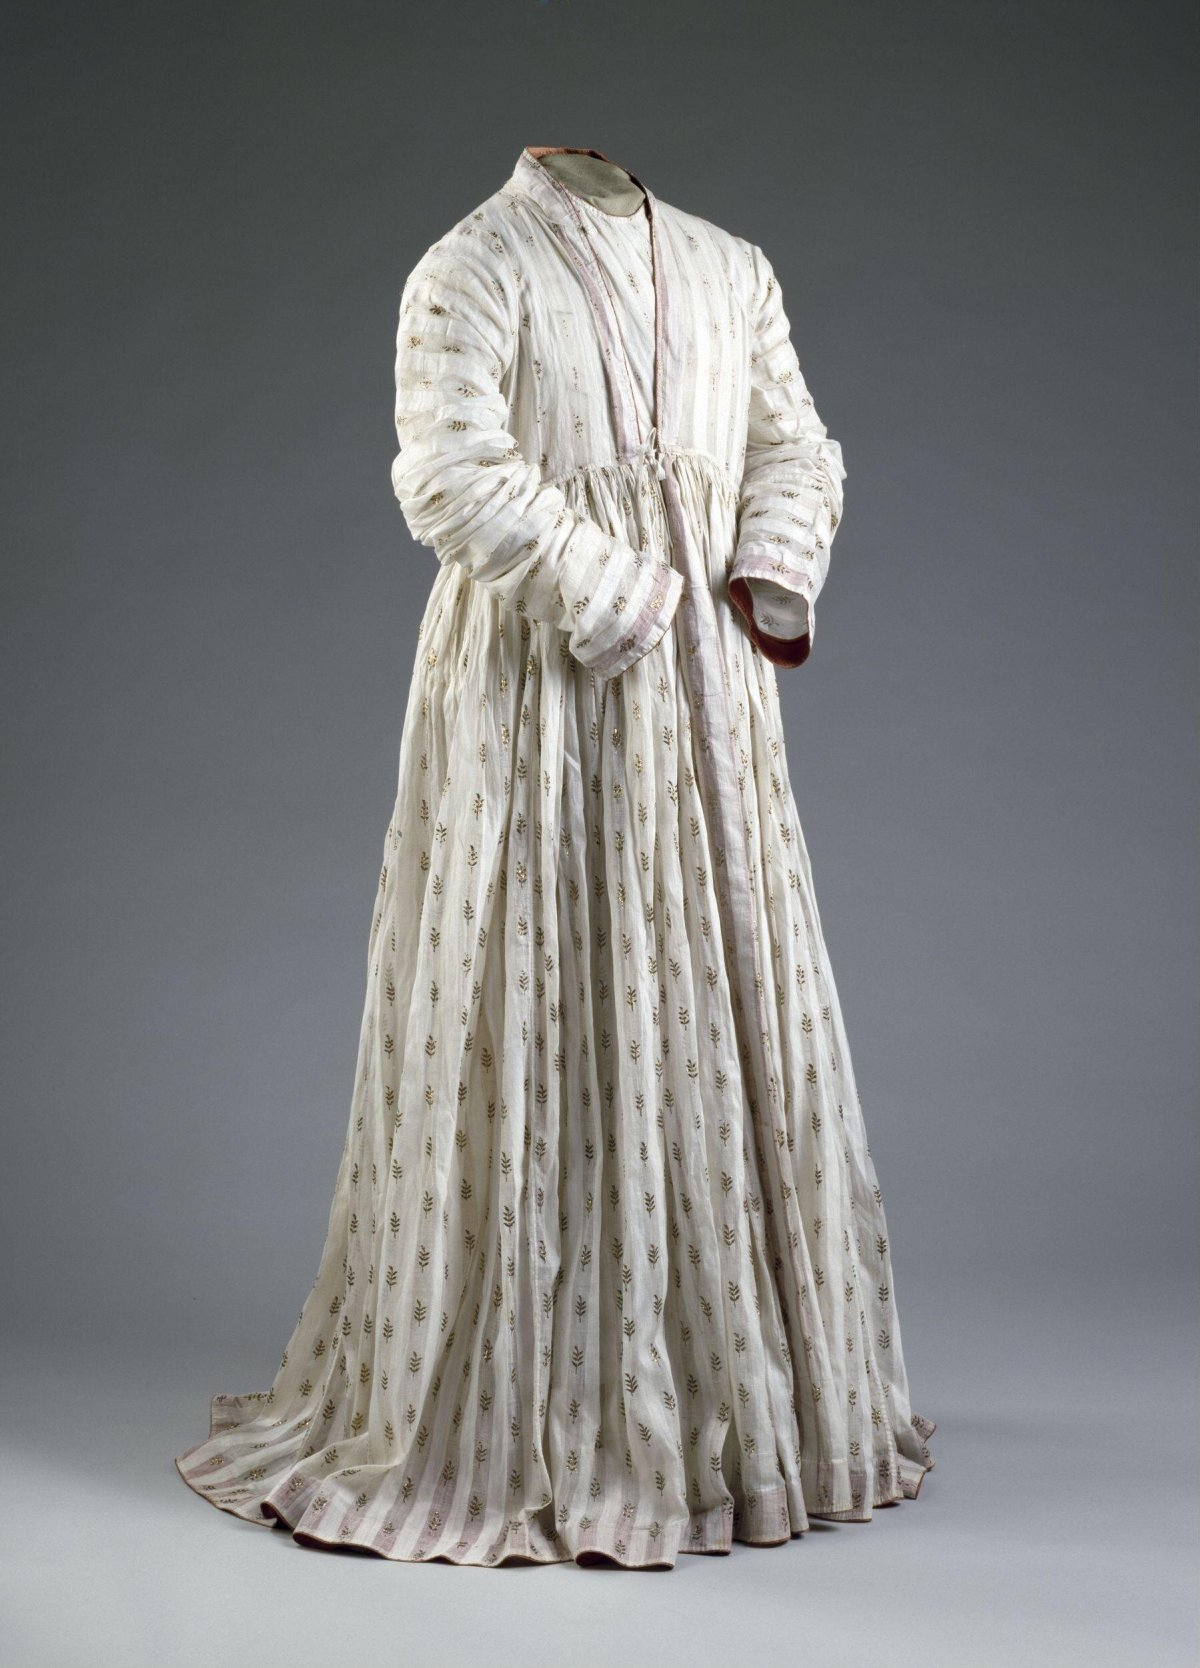 Man's robe (Jama) of white cotton muslin embroidered with gold. Woven in vertical stripes, alternately clear and opaque. The clear stripes are patterned at regular intervals with sprigs of gold foil, applied to the face of the material and stitched down on the reverse with white thread. The hem, collar, cuffs and other borders are faced on the inside with red satin.